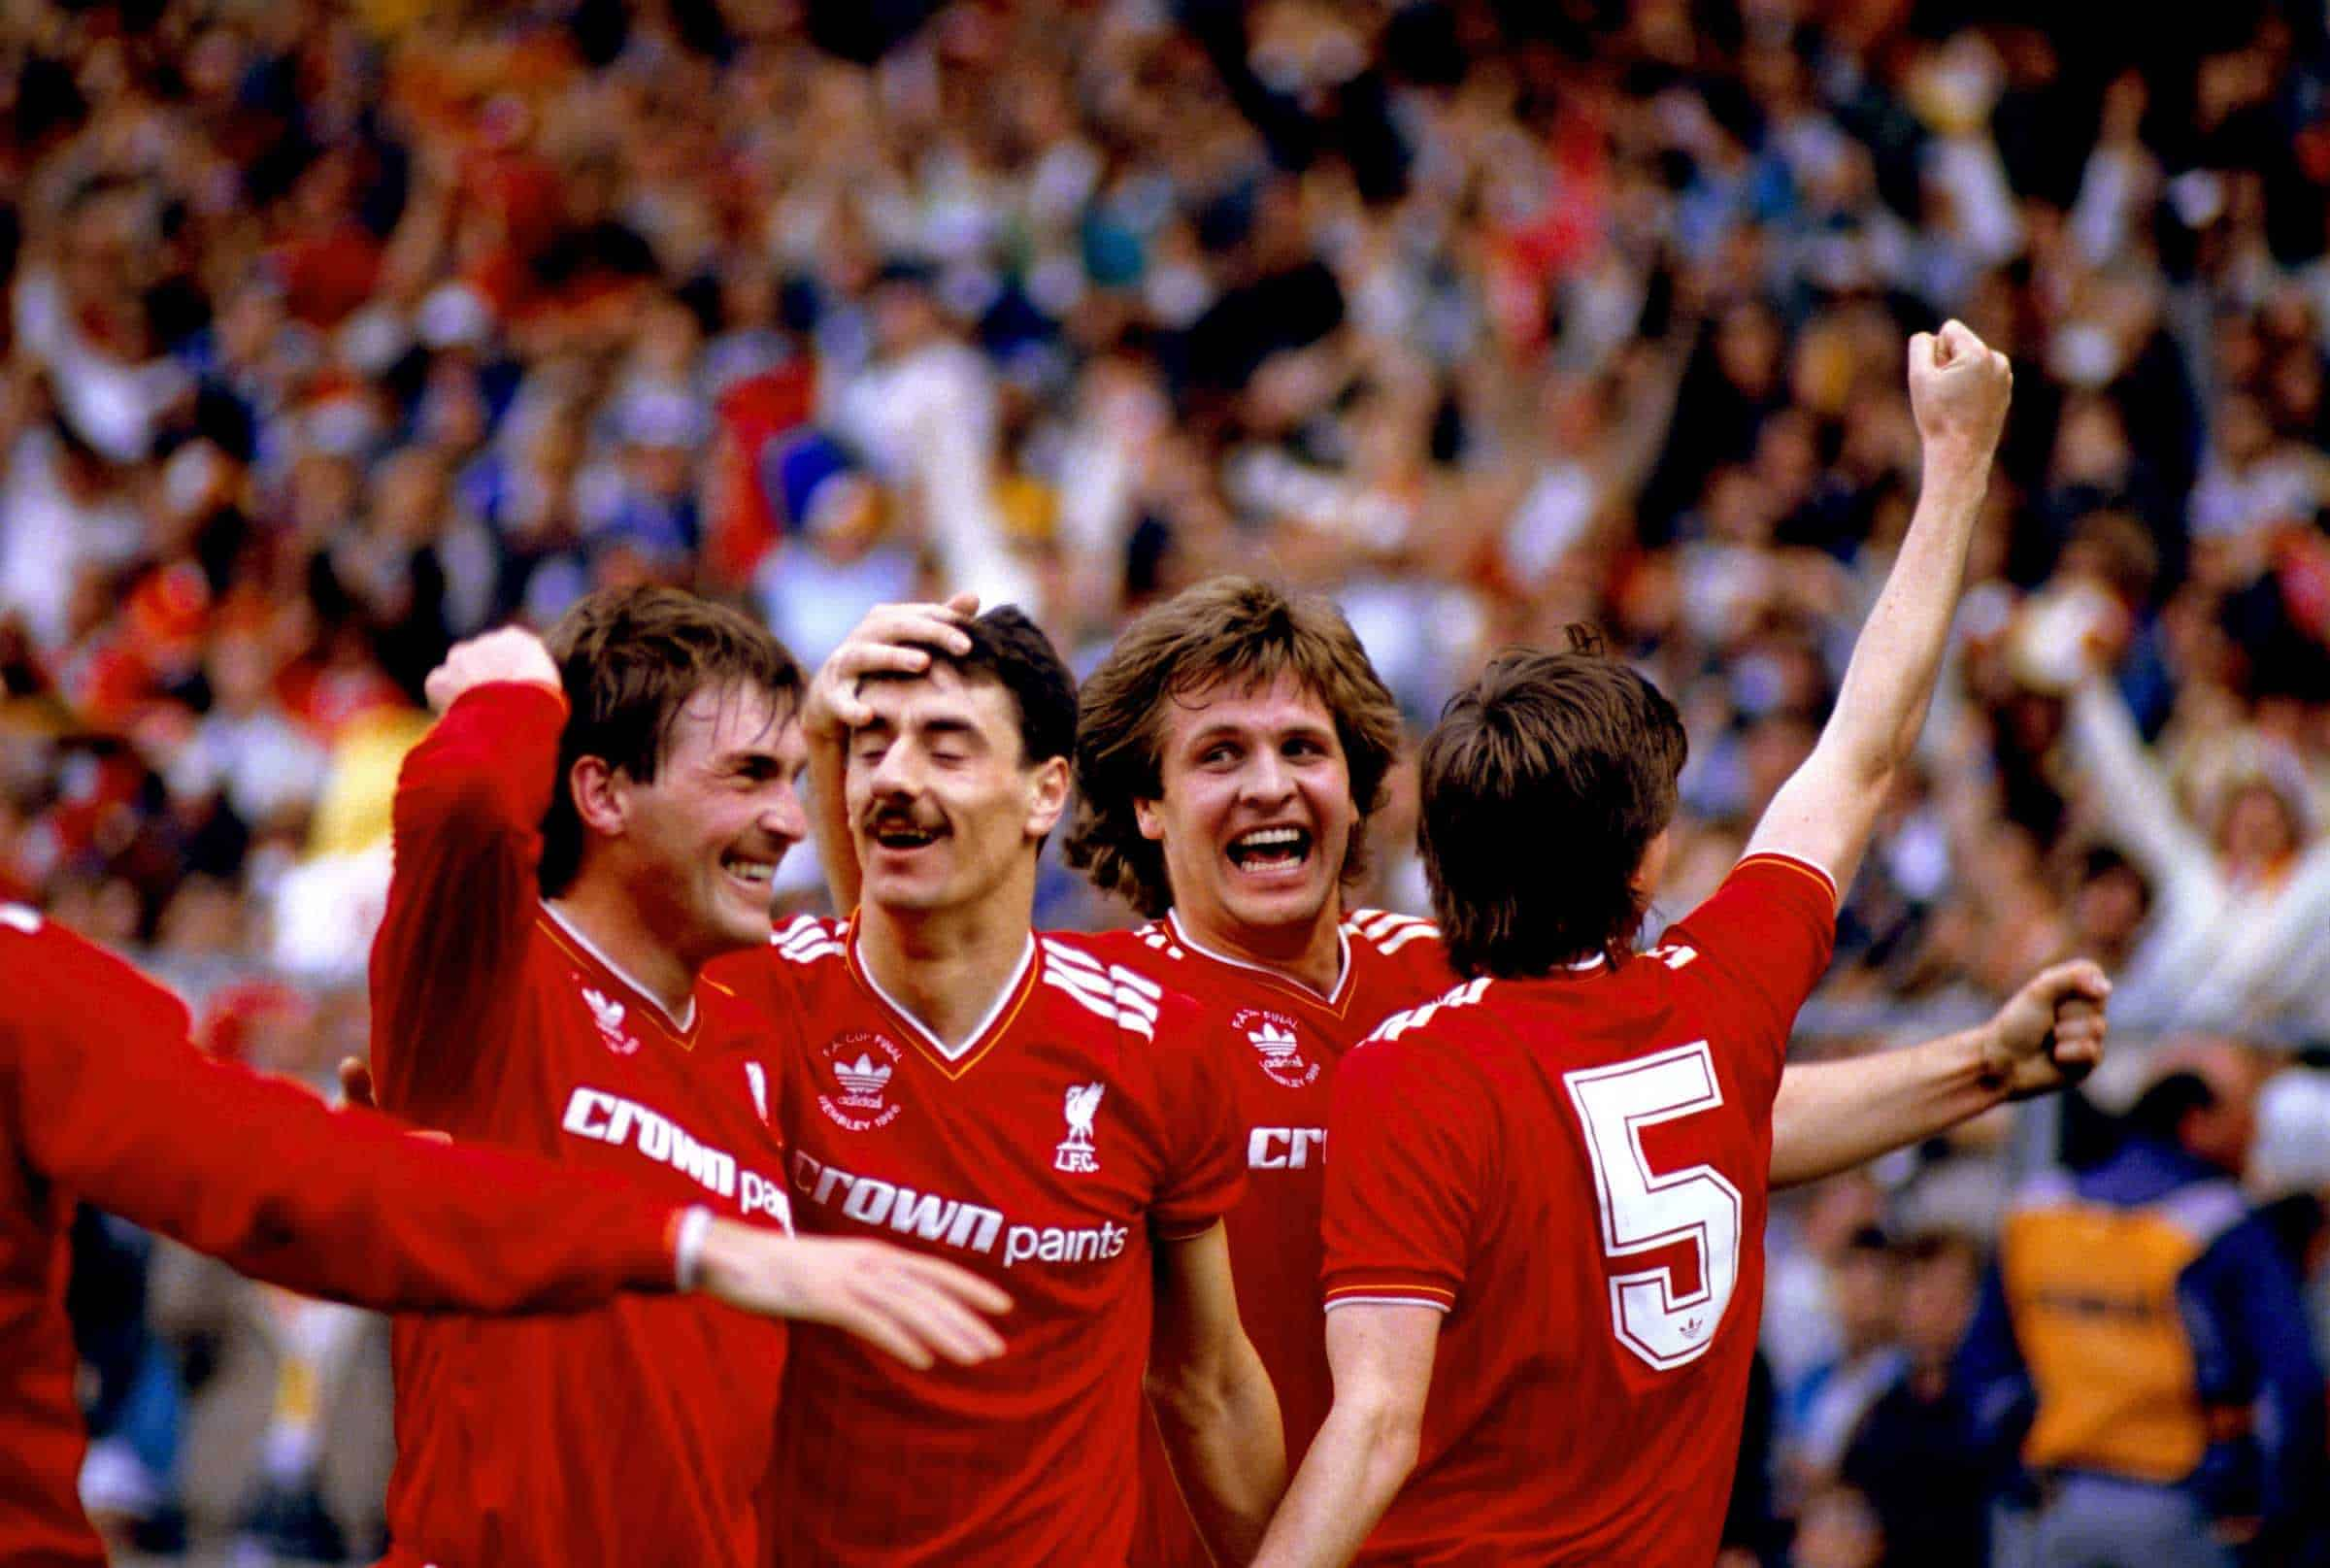 Kenny Dalglish, Jan Molby and Ronnie Whelan congratulate Ian Rush (second l) on one of his two goals vs. Everton in FA Cup Final 1986 (Picture by Peter Robinson EMPICS Sport)